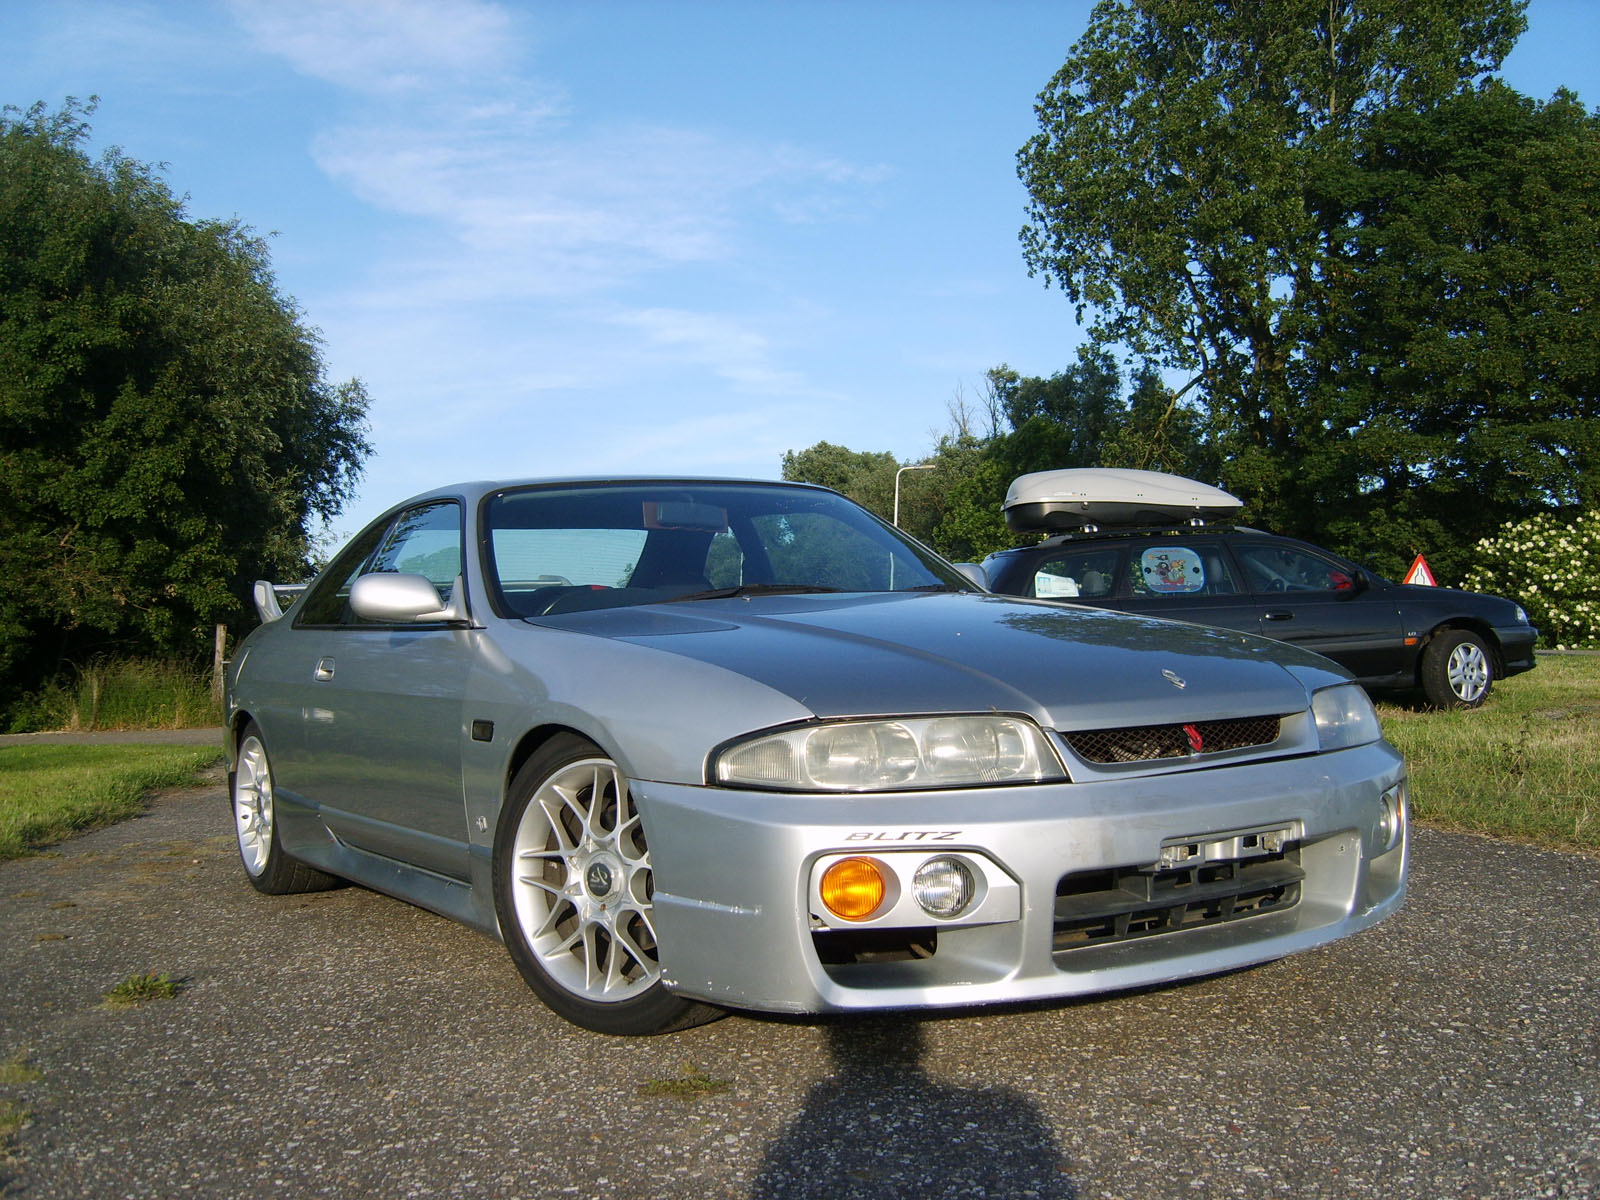 1997 nissan skyline gt r r33 for sale friesland. Black Bedroom Furniture Sets. Home Design Ideas